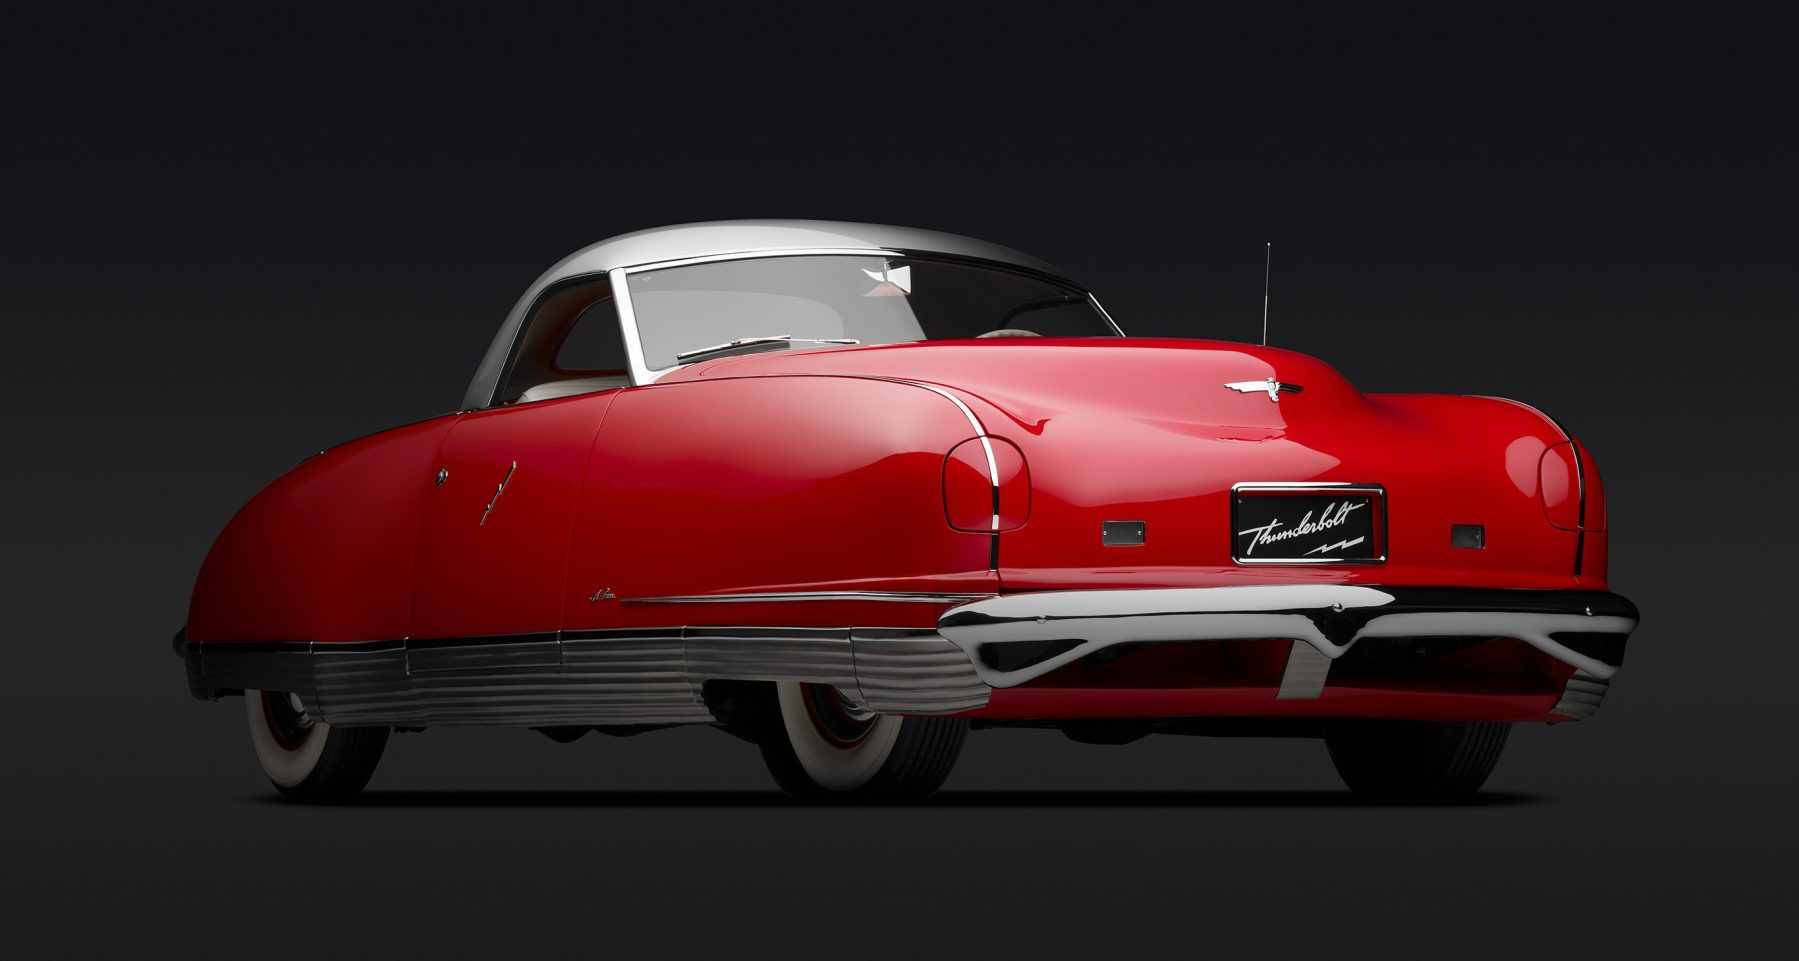 Chrysler Thunderbolt Roadster, 1941. Photo: Peter Harholdt (Courtesy of Roger Willbanks/Portland Art Museum)